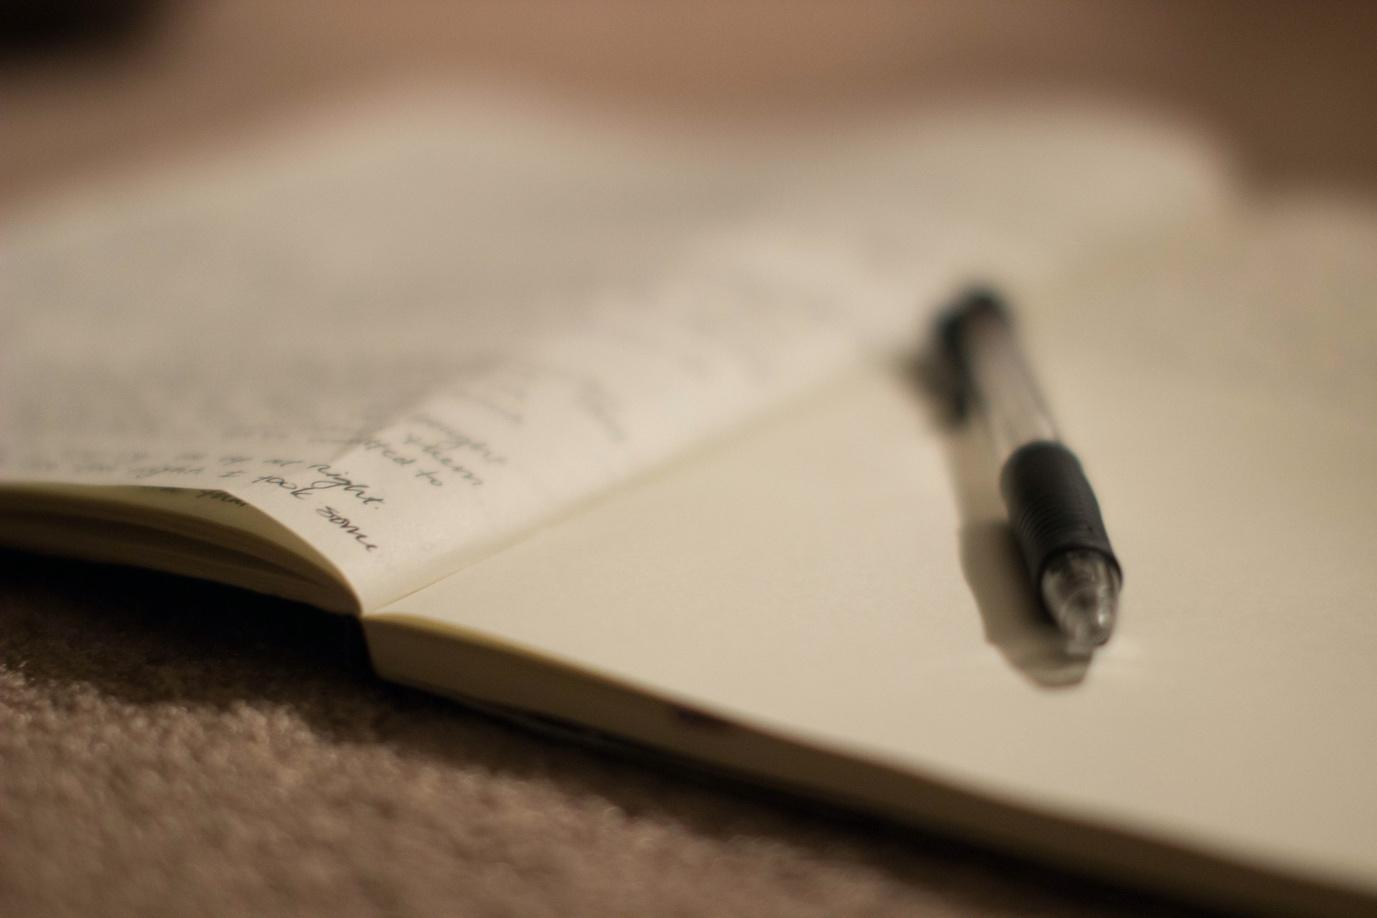 Journalling pen on paper improve mental health covid19 Description automatically generated